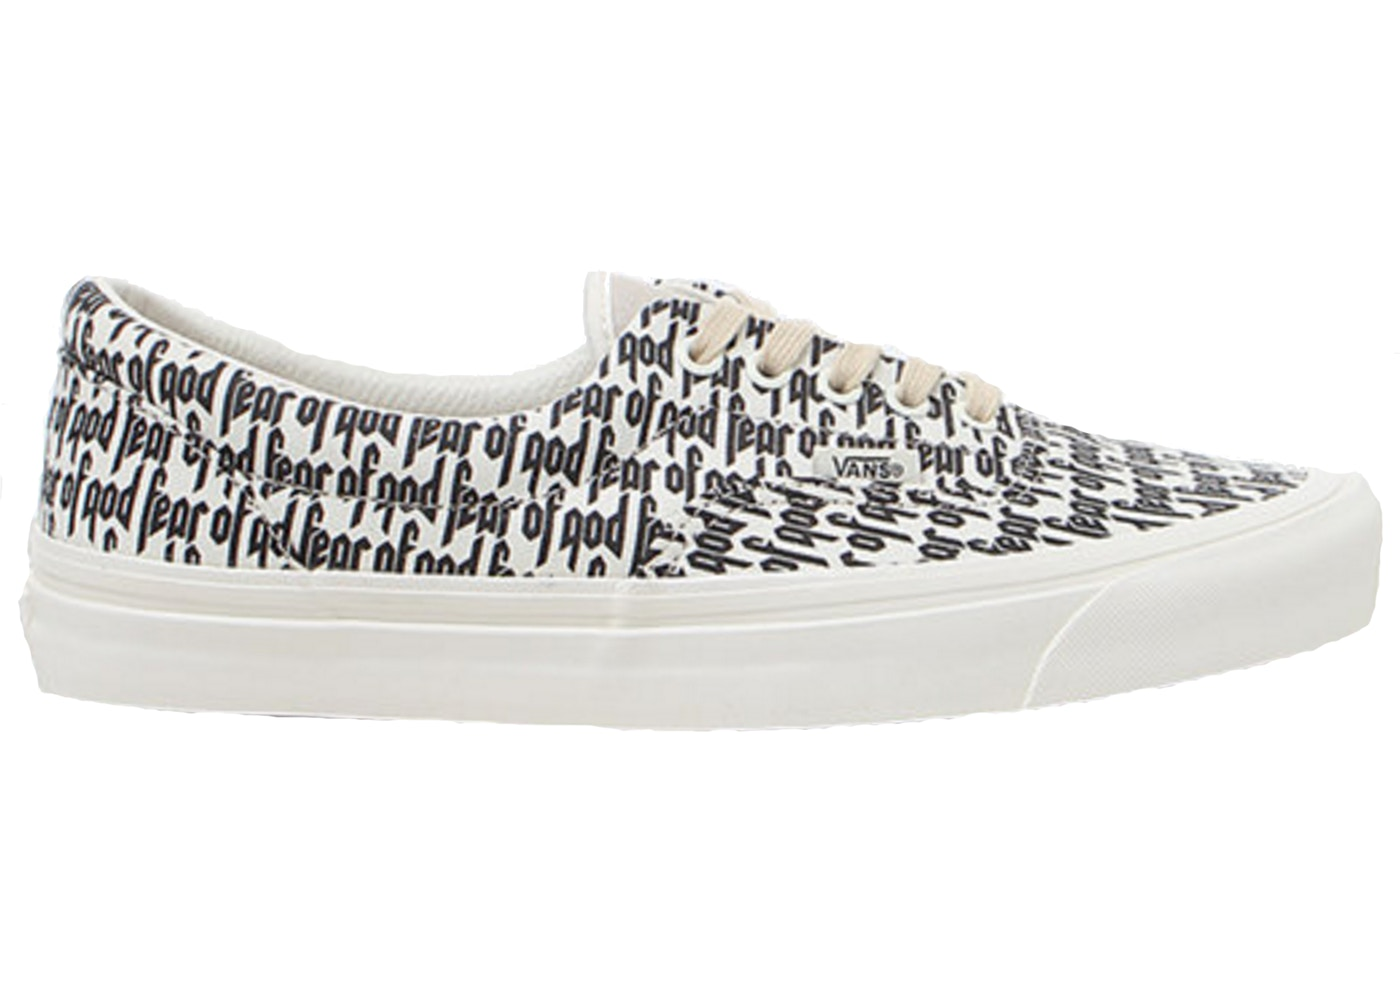 b0269df27aa Vans Era 95 Fear of God - TBD